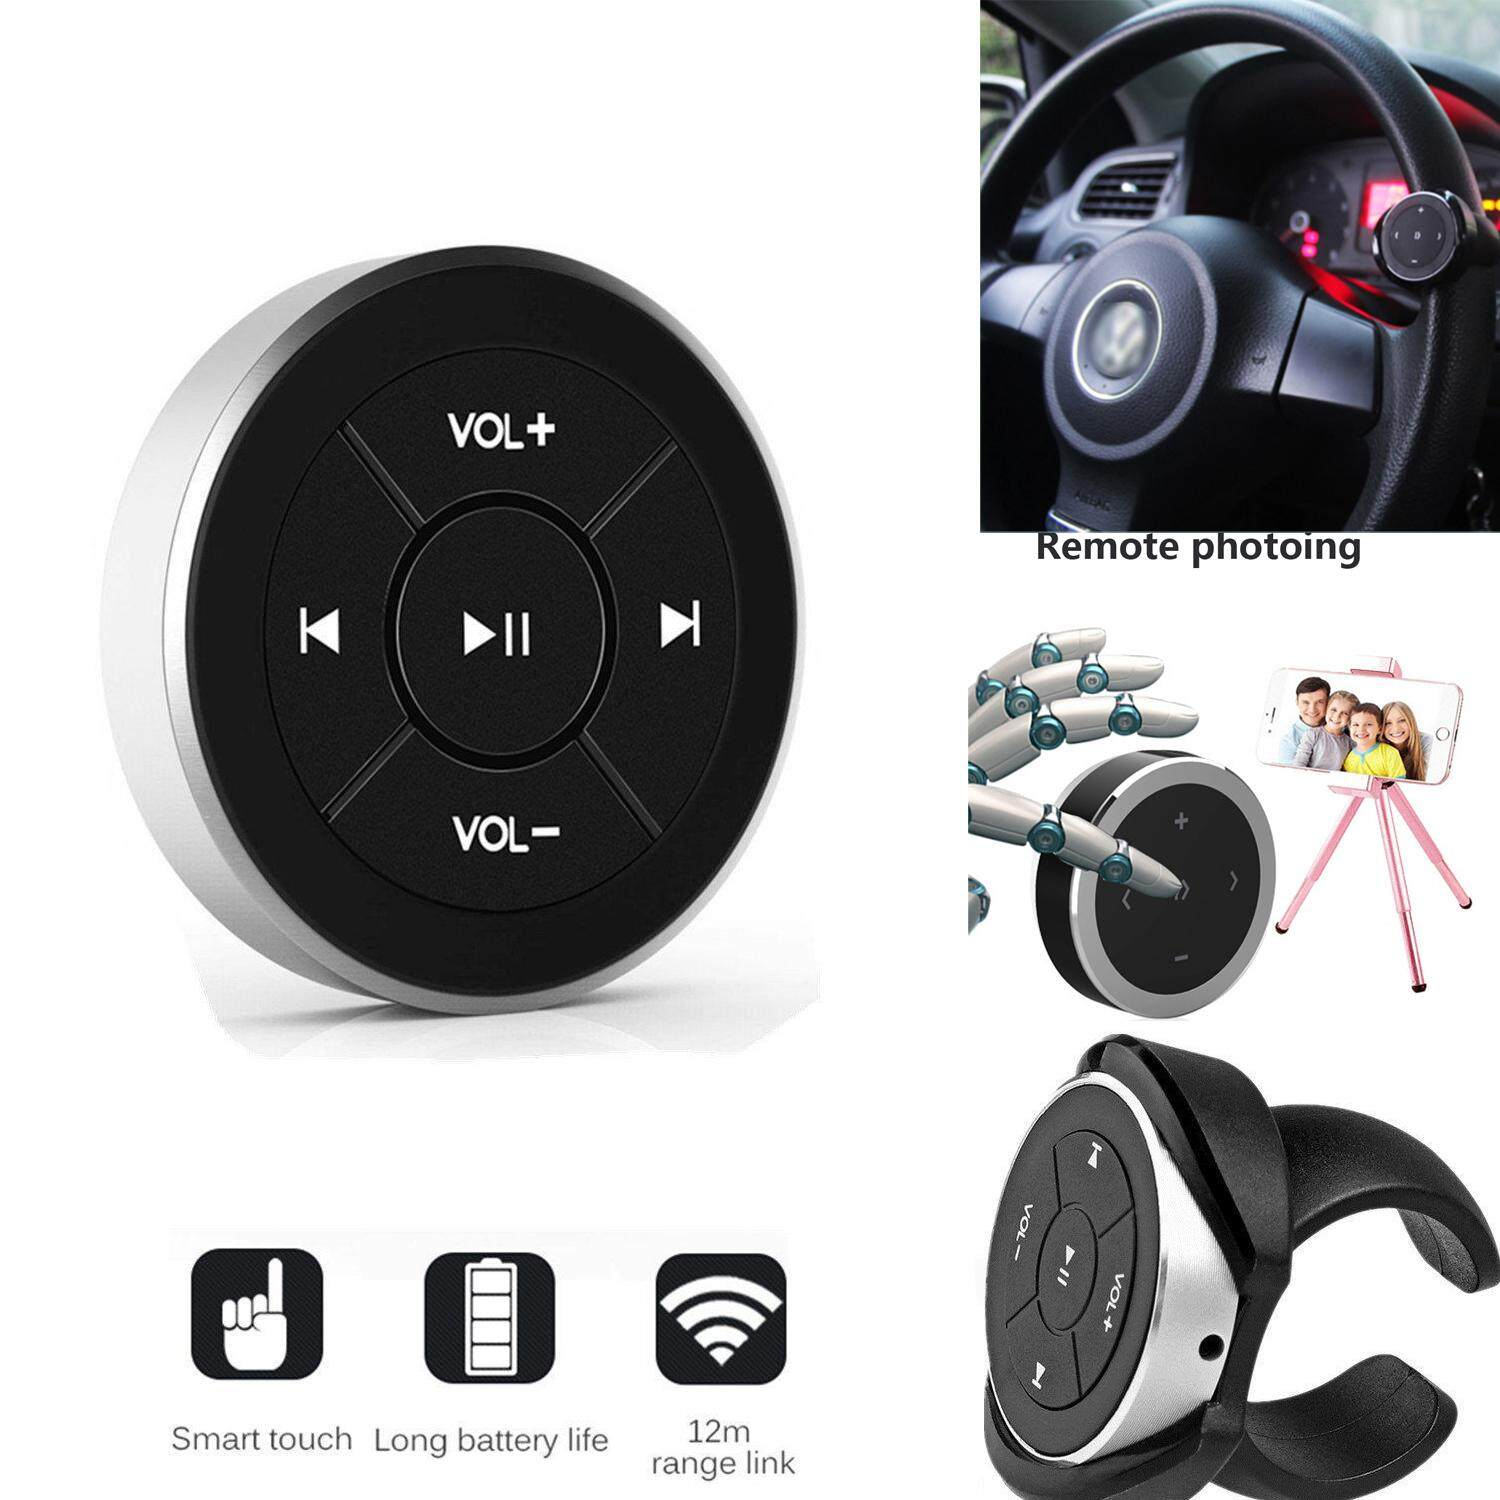 Car Audio Buy At Best Price In Malaysia 2007 Toyota Camry Stereo Amp Wiring Flash Deal Bluetooth Media Music Play Remote Control Button Steering Wheel Mount